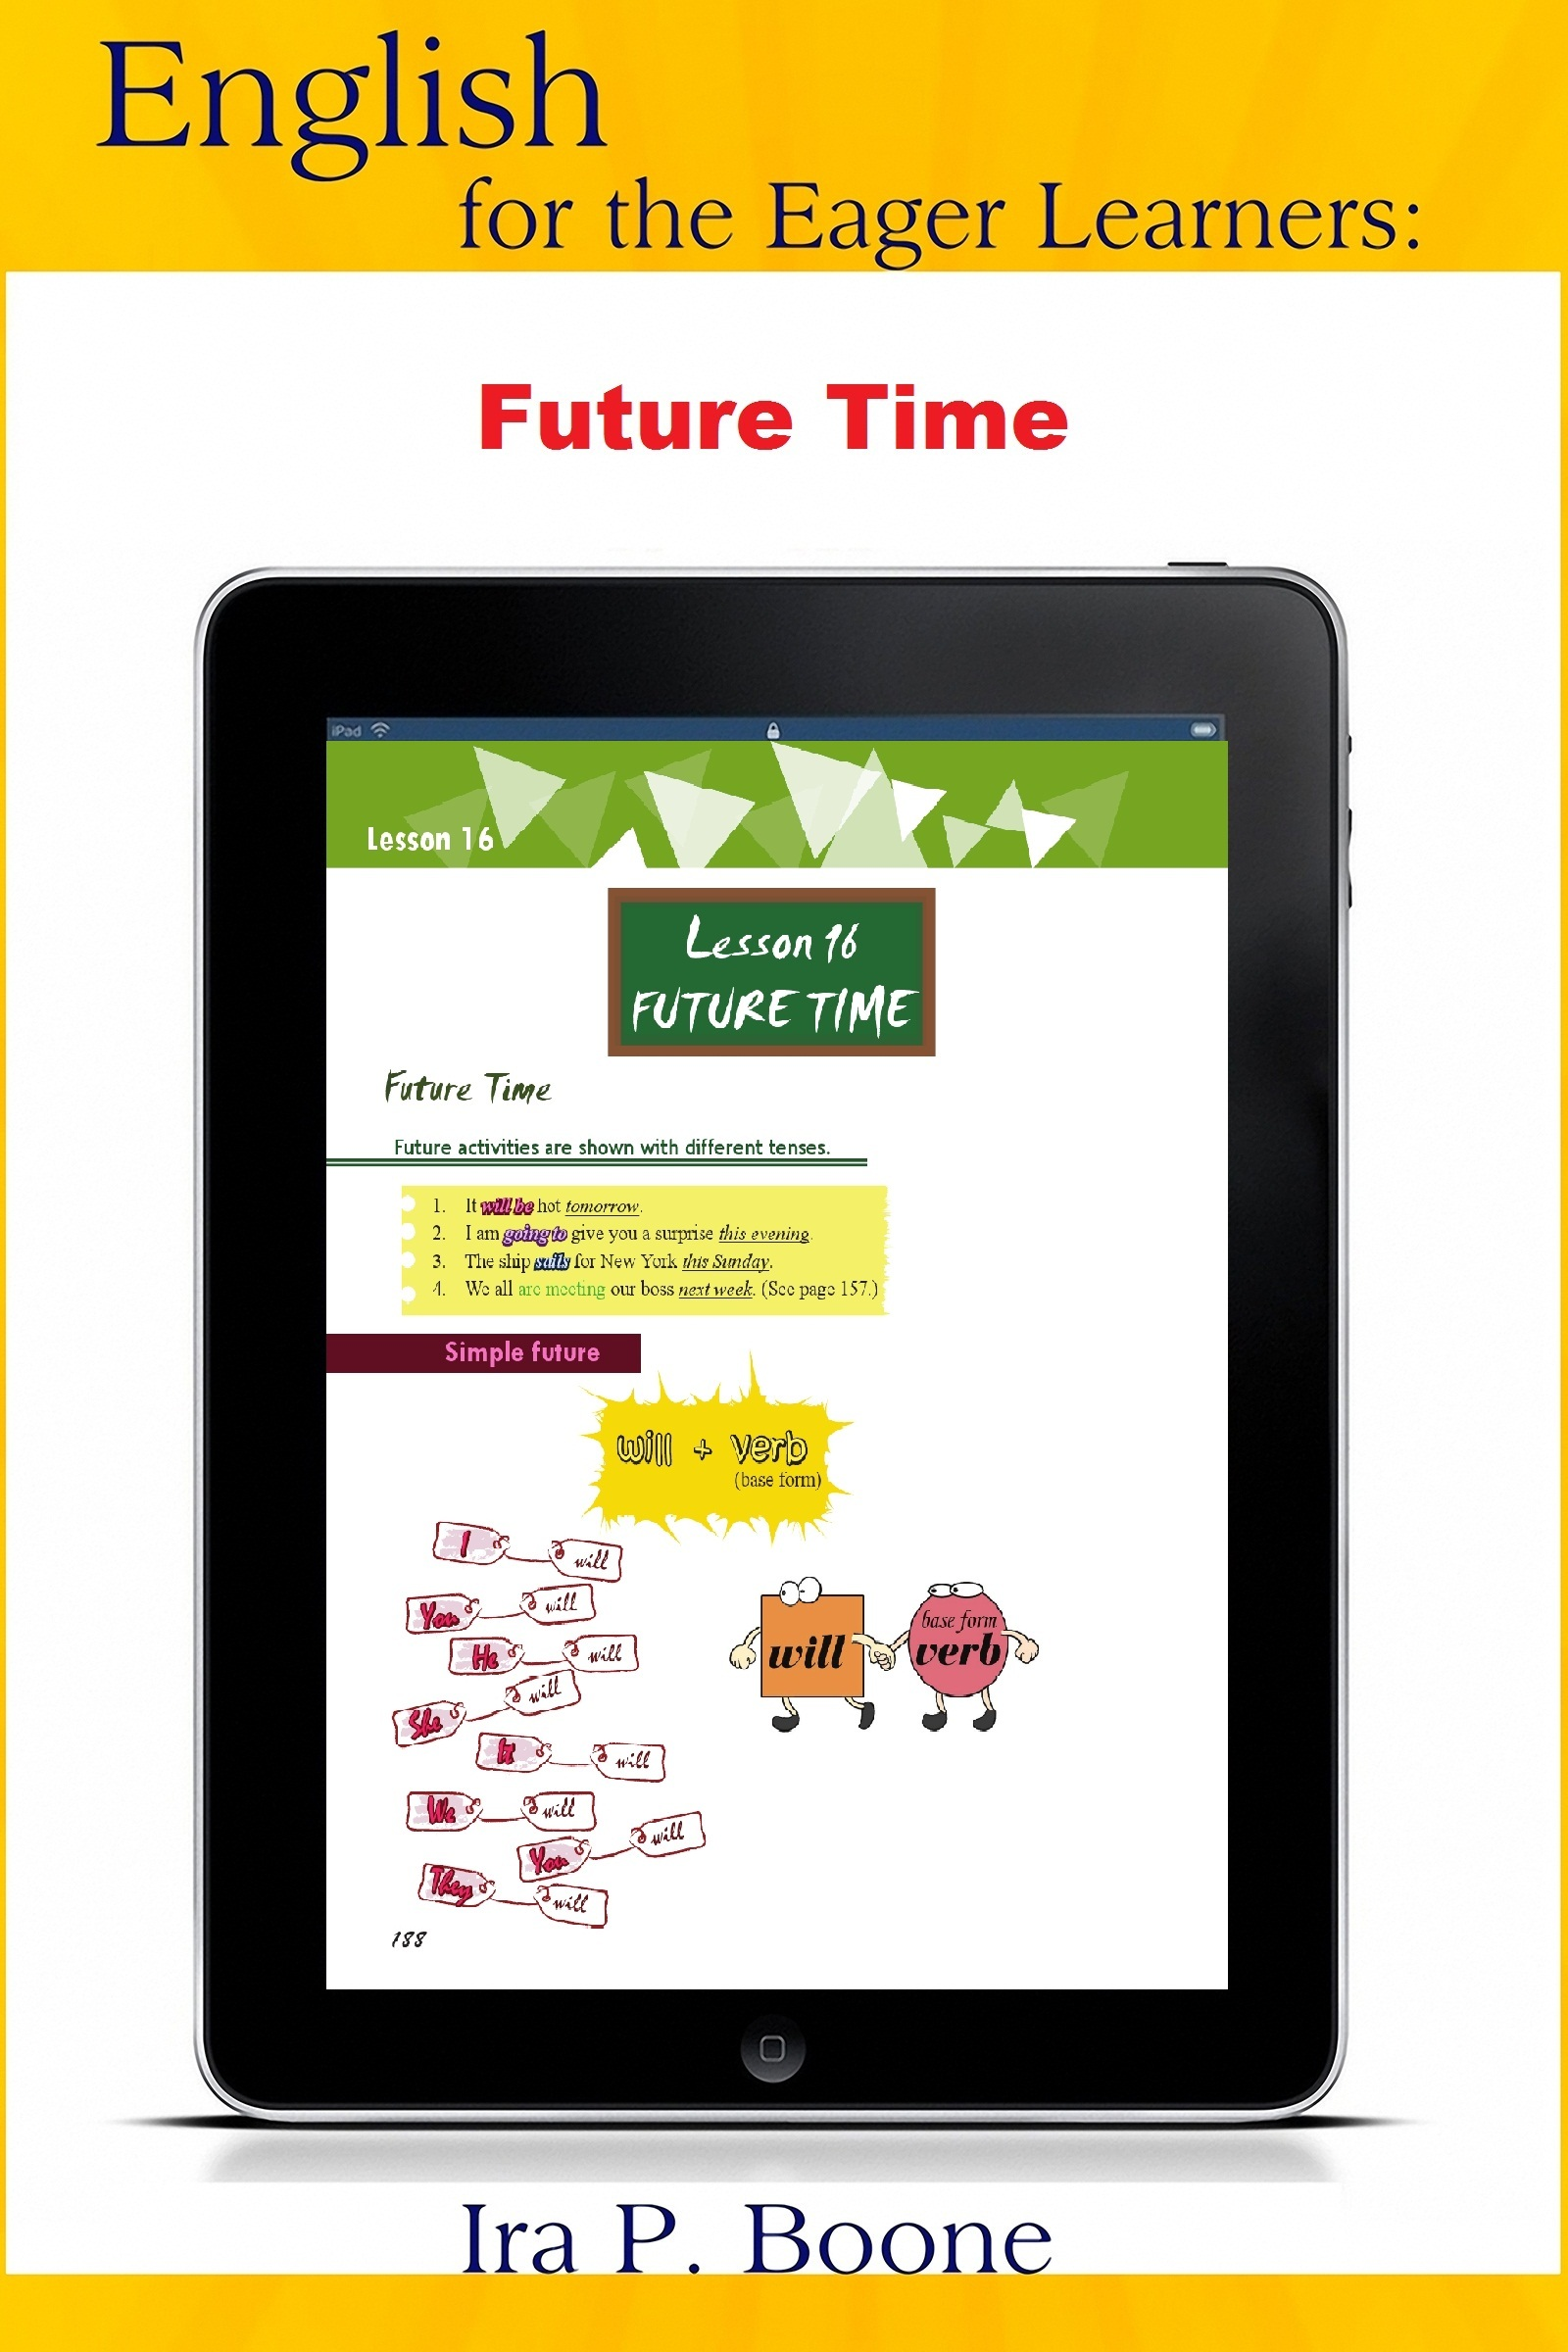 English for the Eager Learners: Future Time